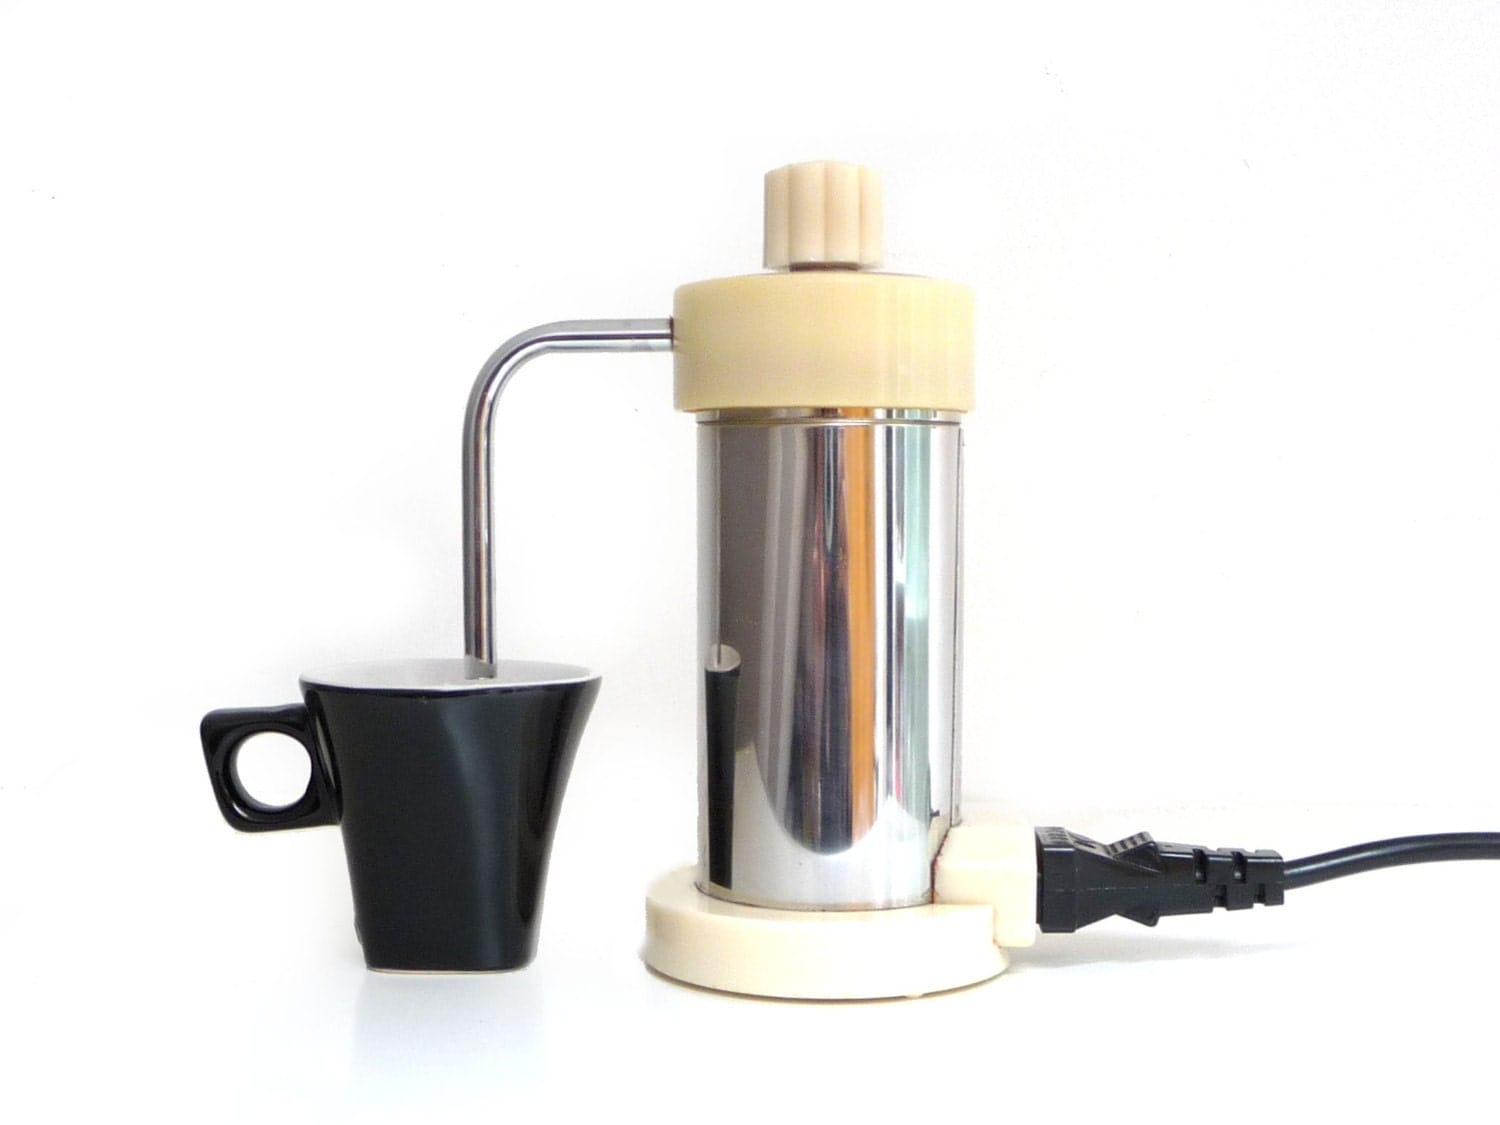 Antique Italian Coffee Maker : Vintage Electric Espresso Coffee Maker Percolator Italian